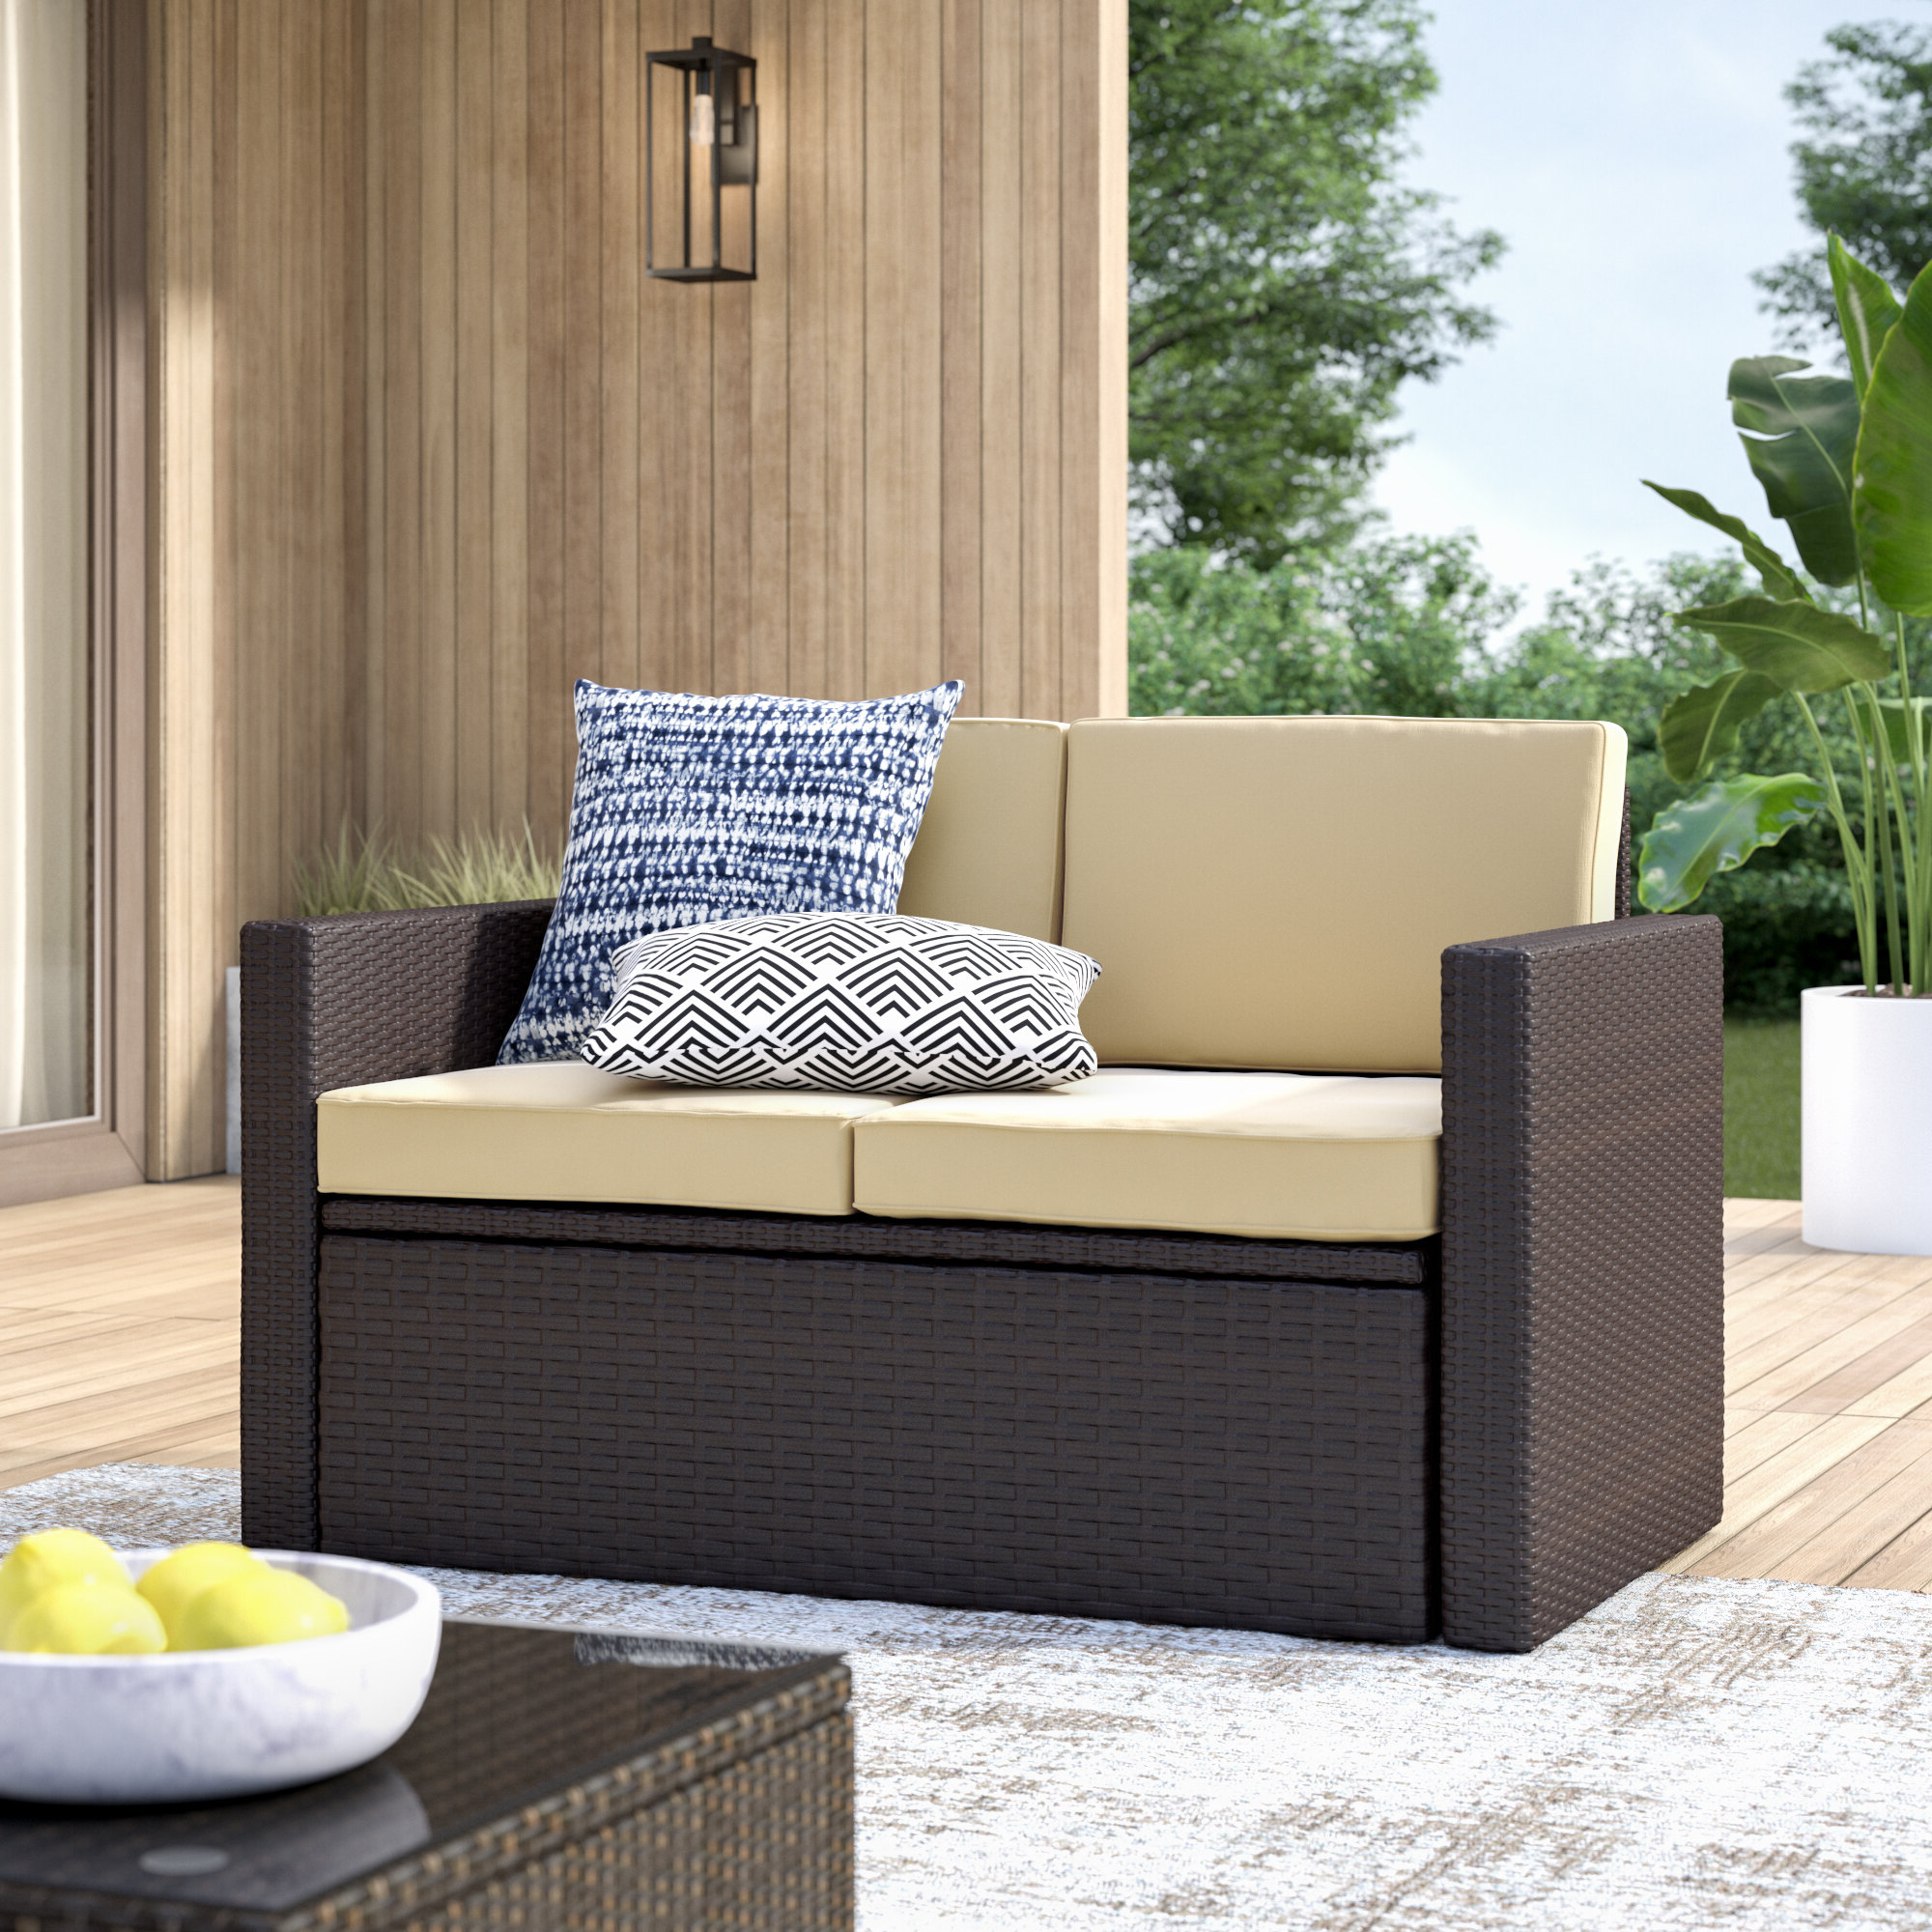 Hagler Outdoor Loveseats With Cushions In Current Belton Loveseat With Cushions (View 8 of 25)